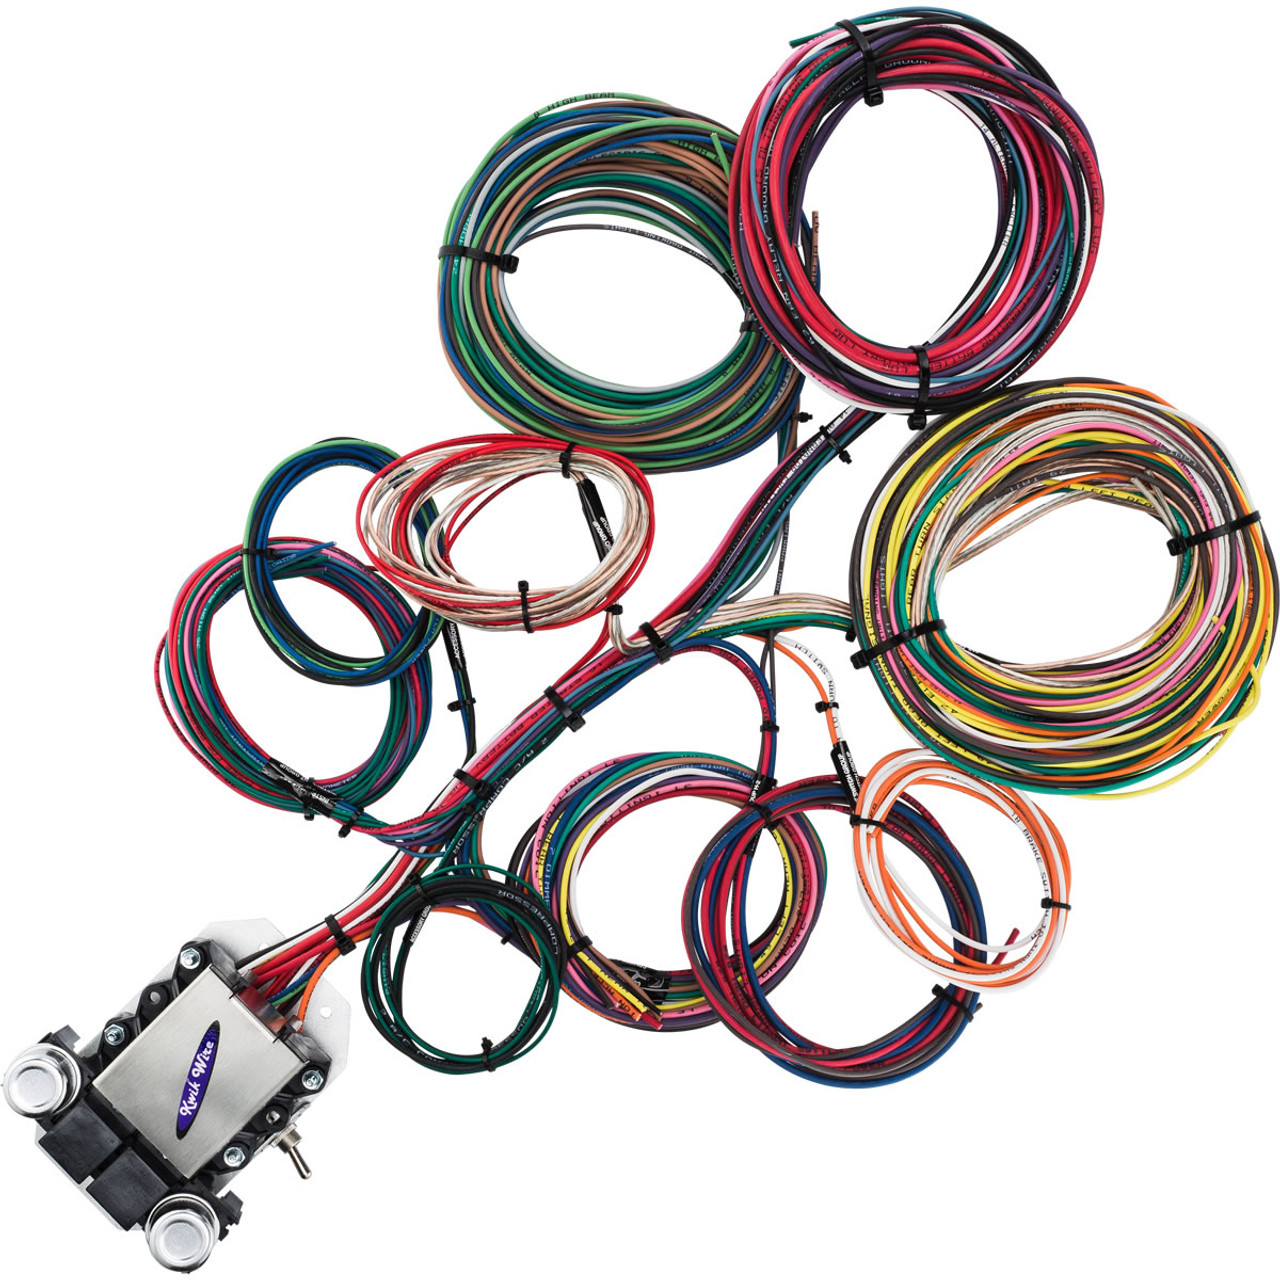 14 circuit ford wire harness kwikwire com electrify your ride electrical wire harness design software electrical wire harness [ 1200 x 1200 Pixel ]